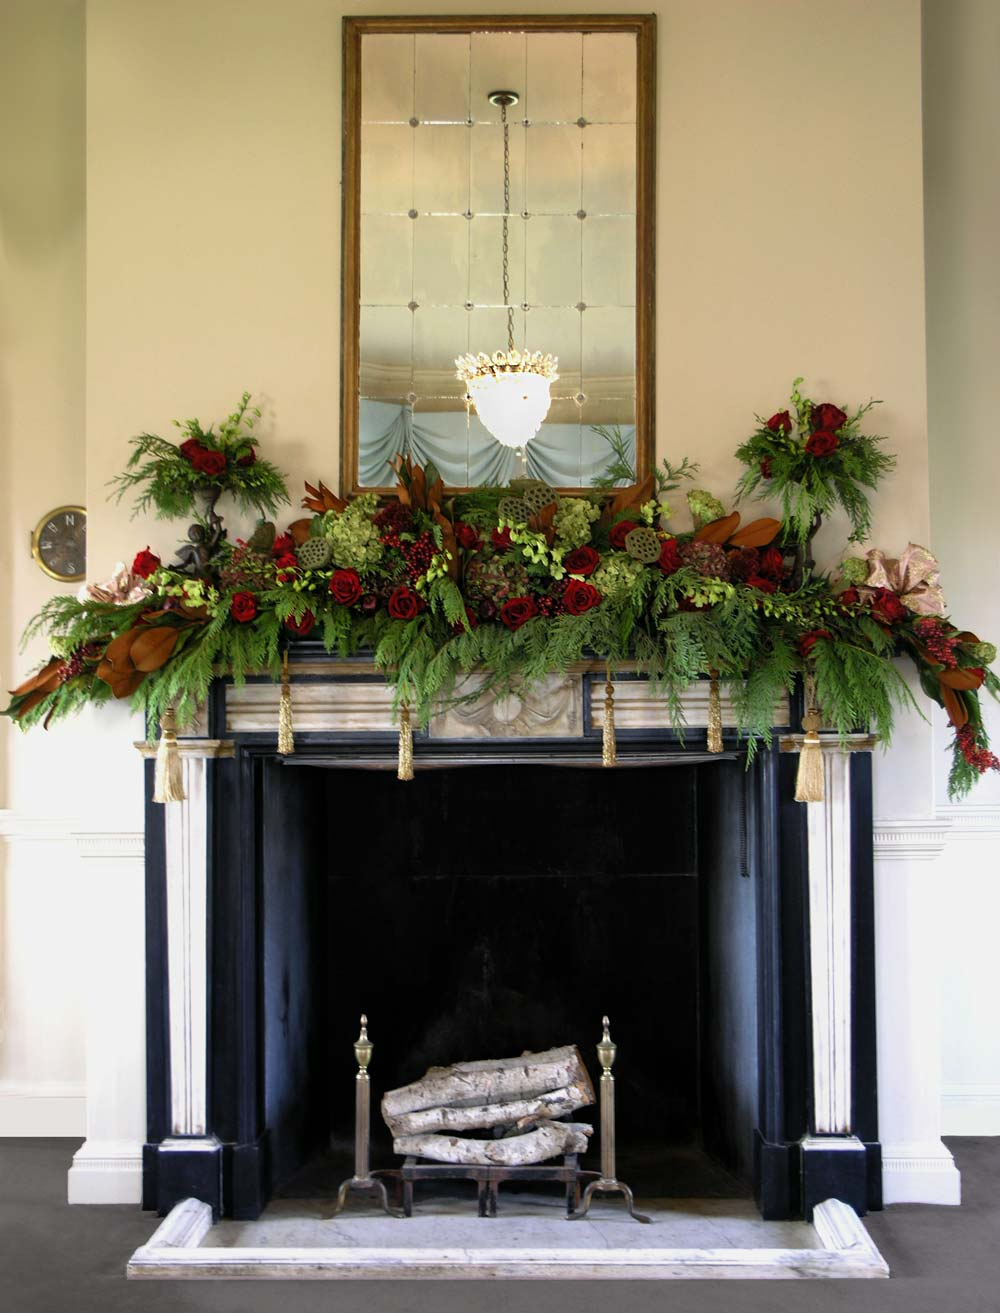 Gorgeous Holiday Mantel Display